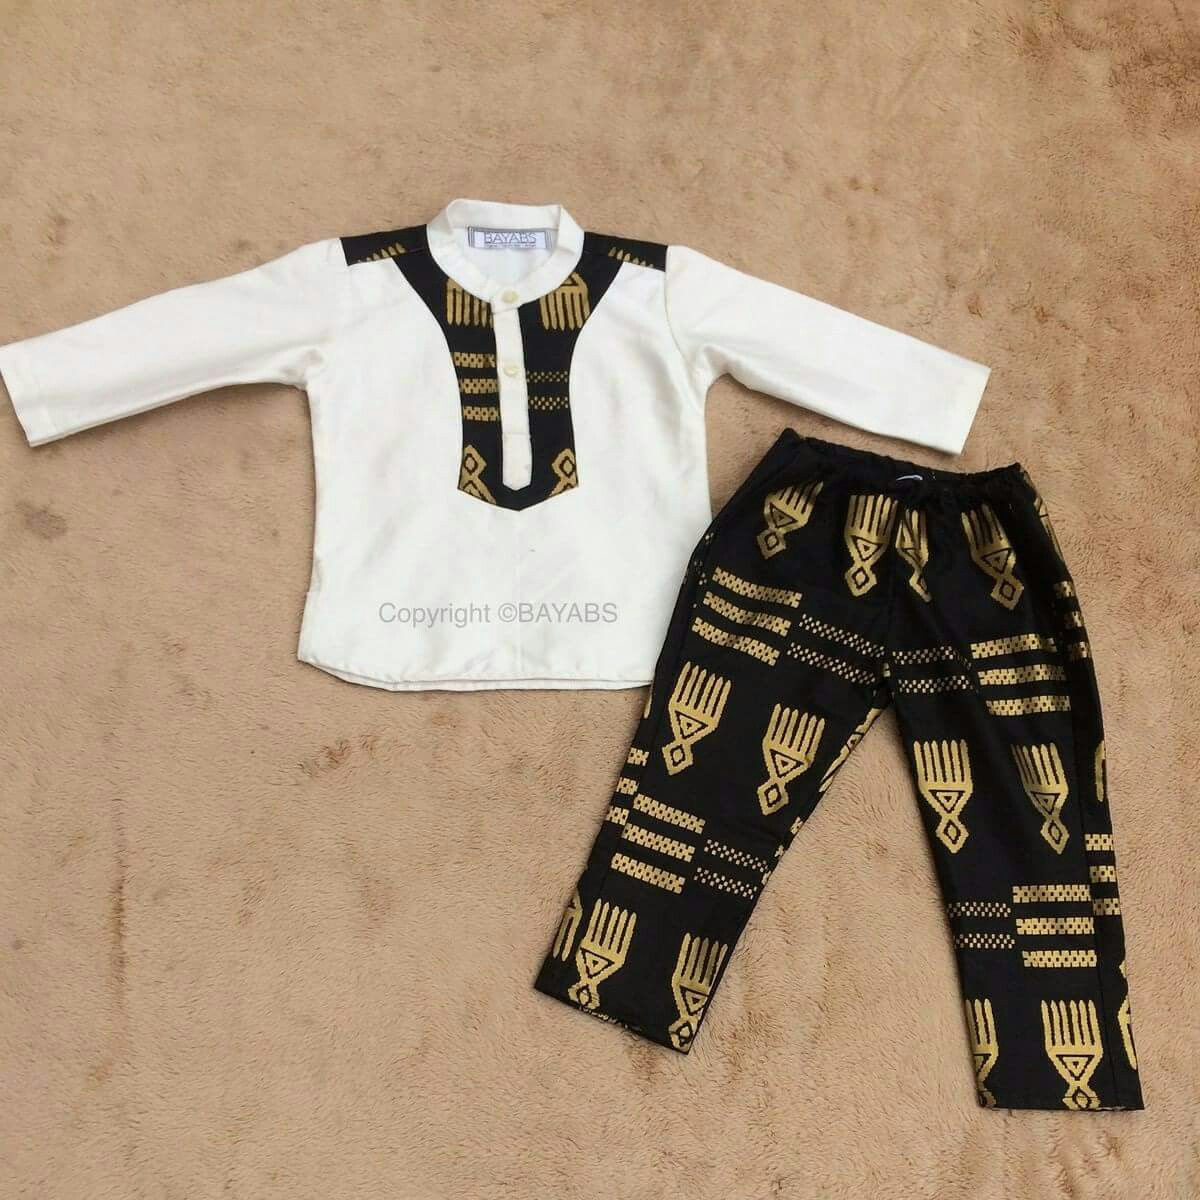 Pin By Fatima Mouhammade Ndiaye On Enfants Baby African Clothes African Fashion Dresses African Men Fashion